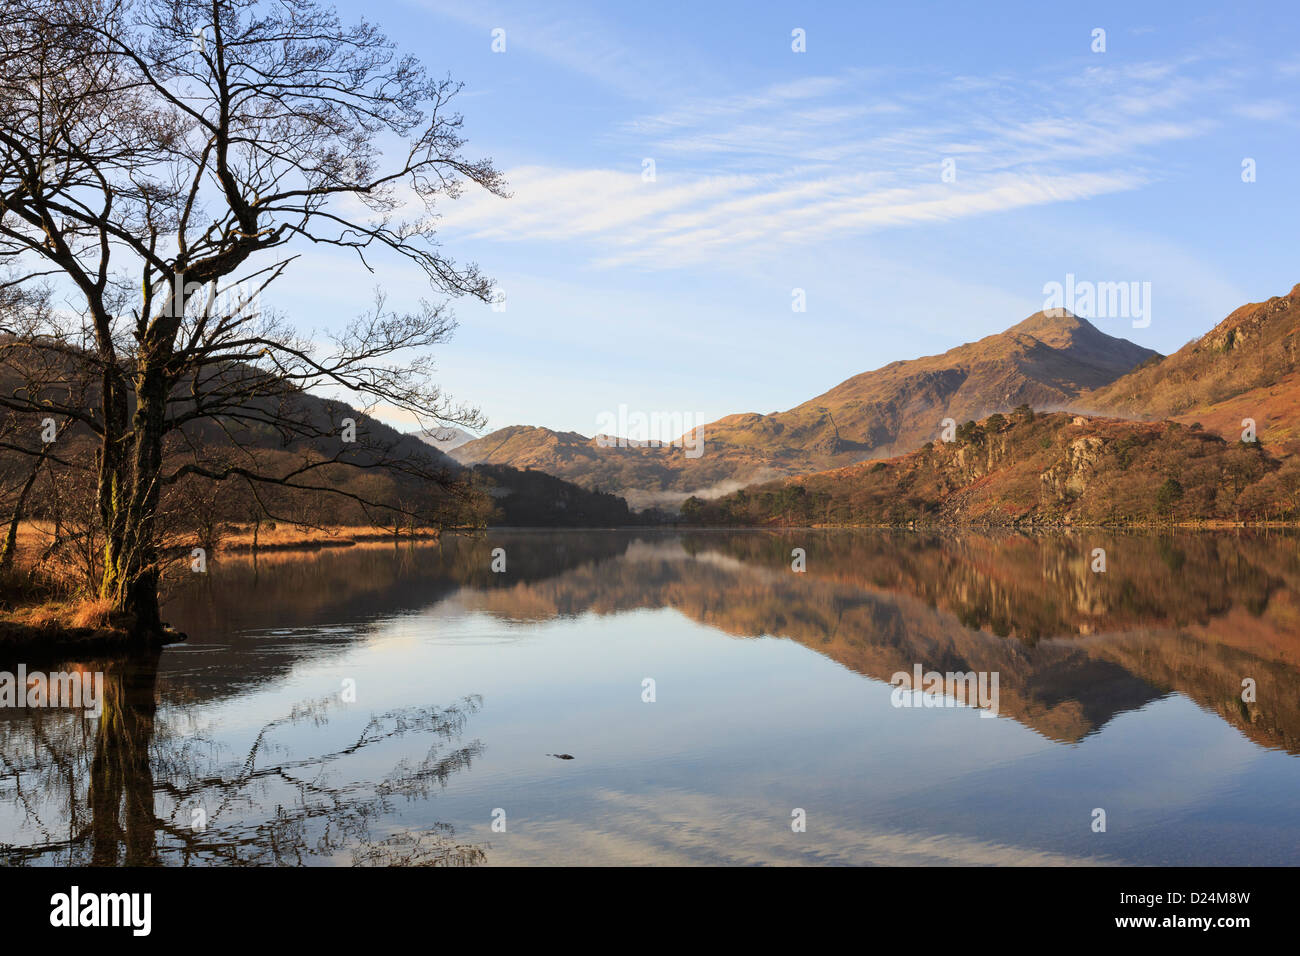 View to Yr Aran with reflections in still tranquil waters of Llyn Gwynant lake in mountains of Snowdonia National Park landscape. North Wales UK Stock Photo